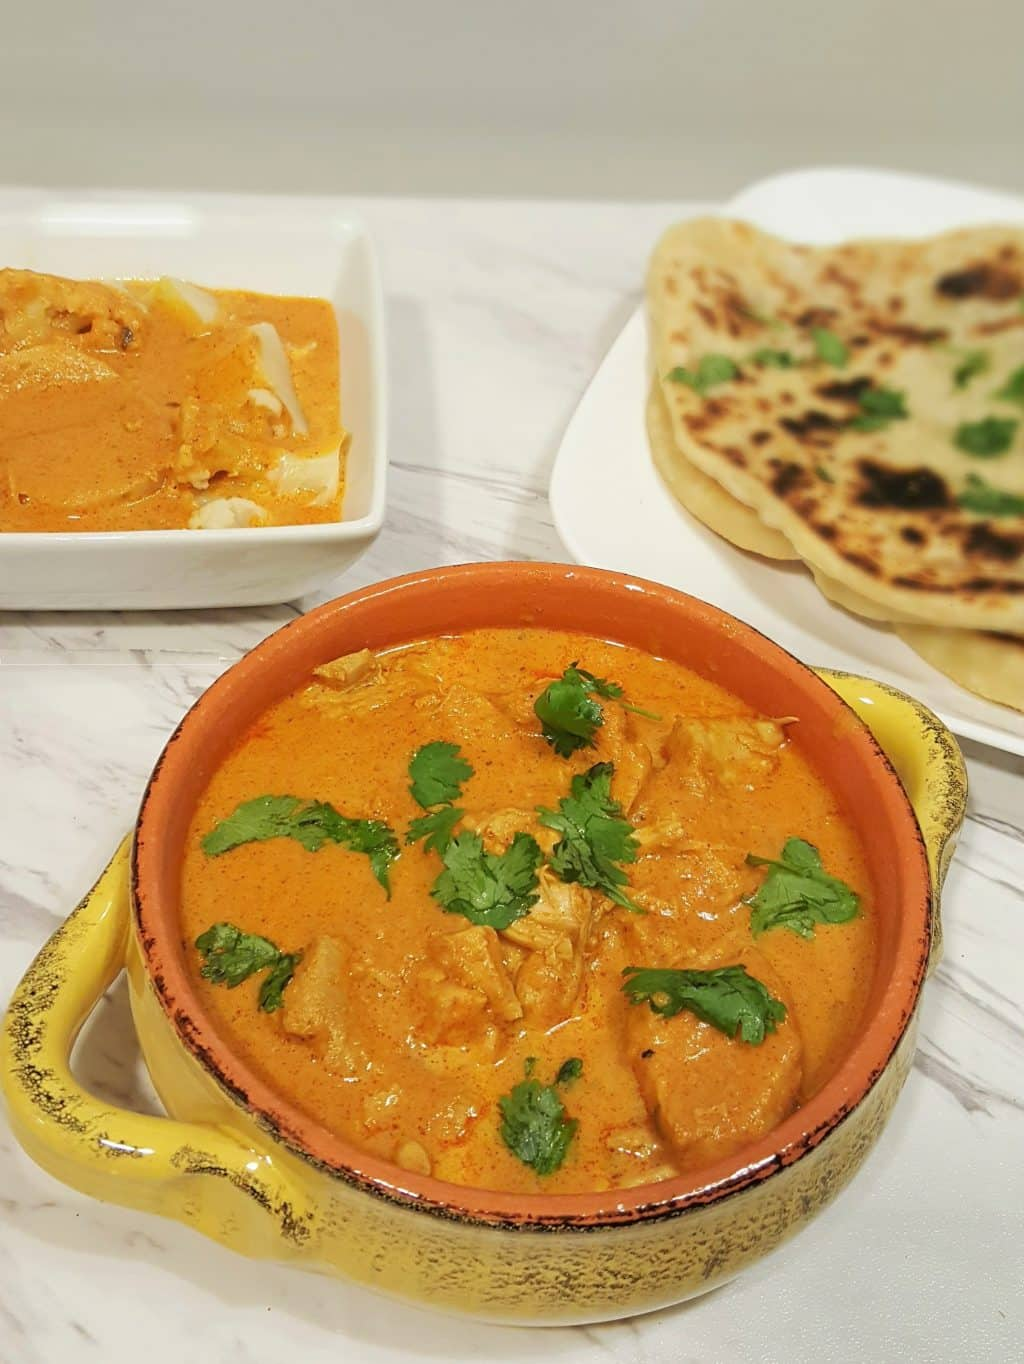 A bowl of Indian butter chicken on a plate with indian flatbread on another plate.